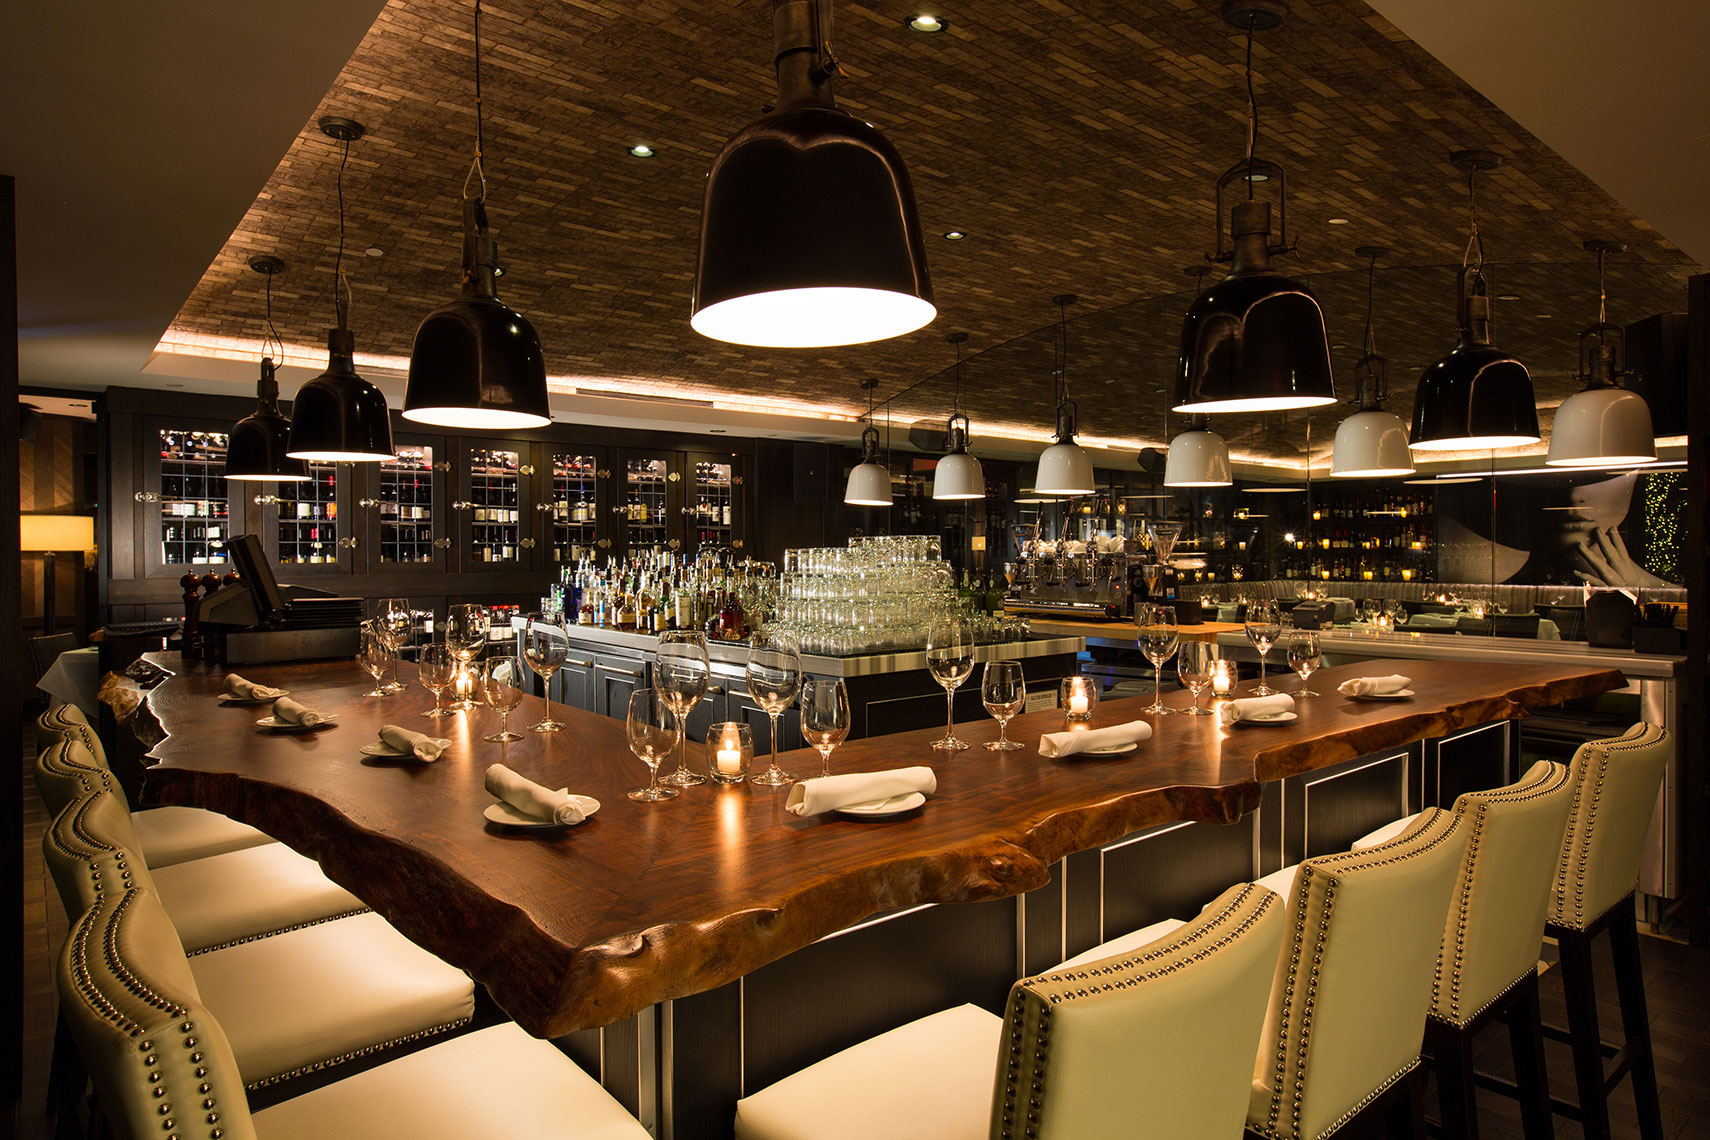 an Interior design photograph of a restaurant bar at night by restaurant Photographer Dallas